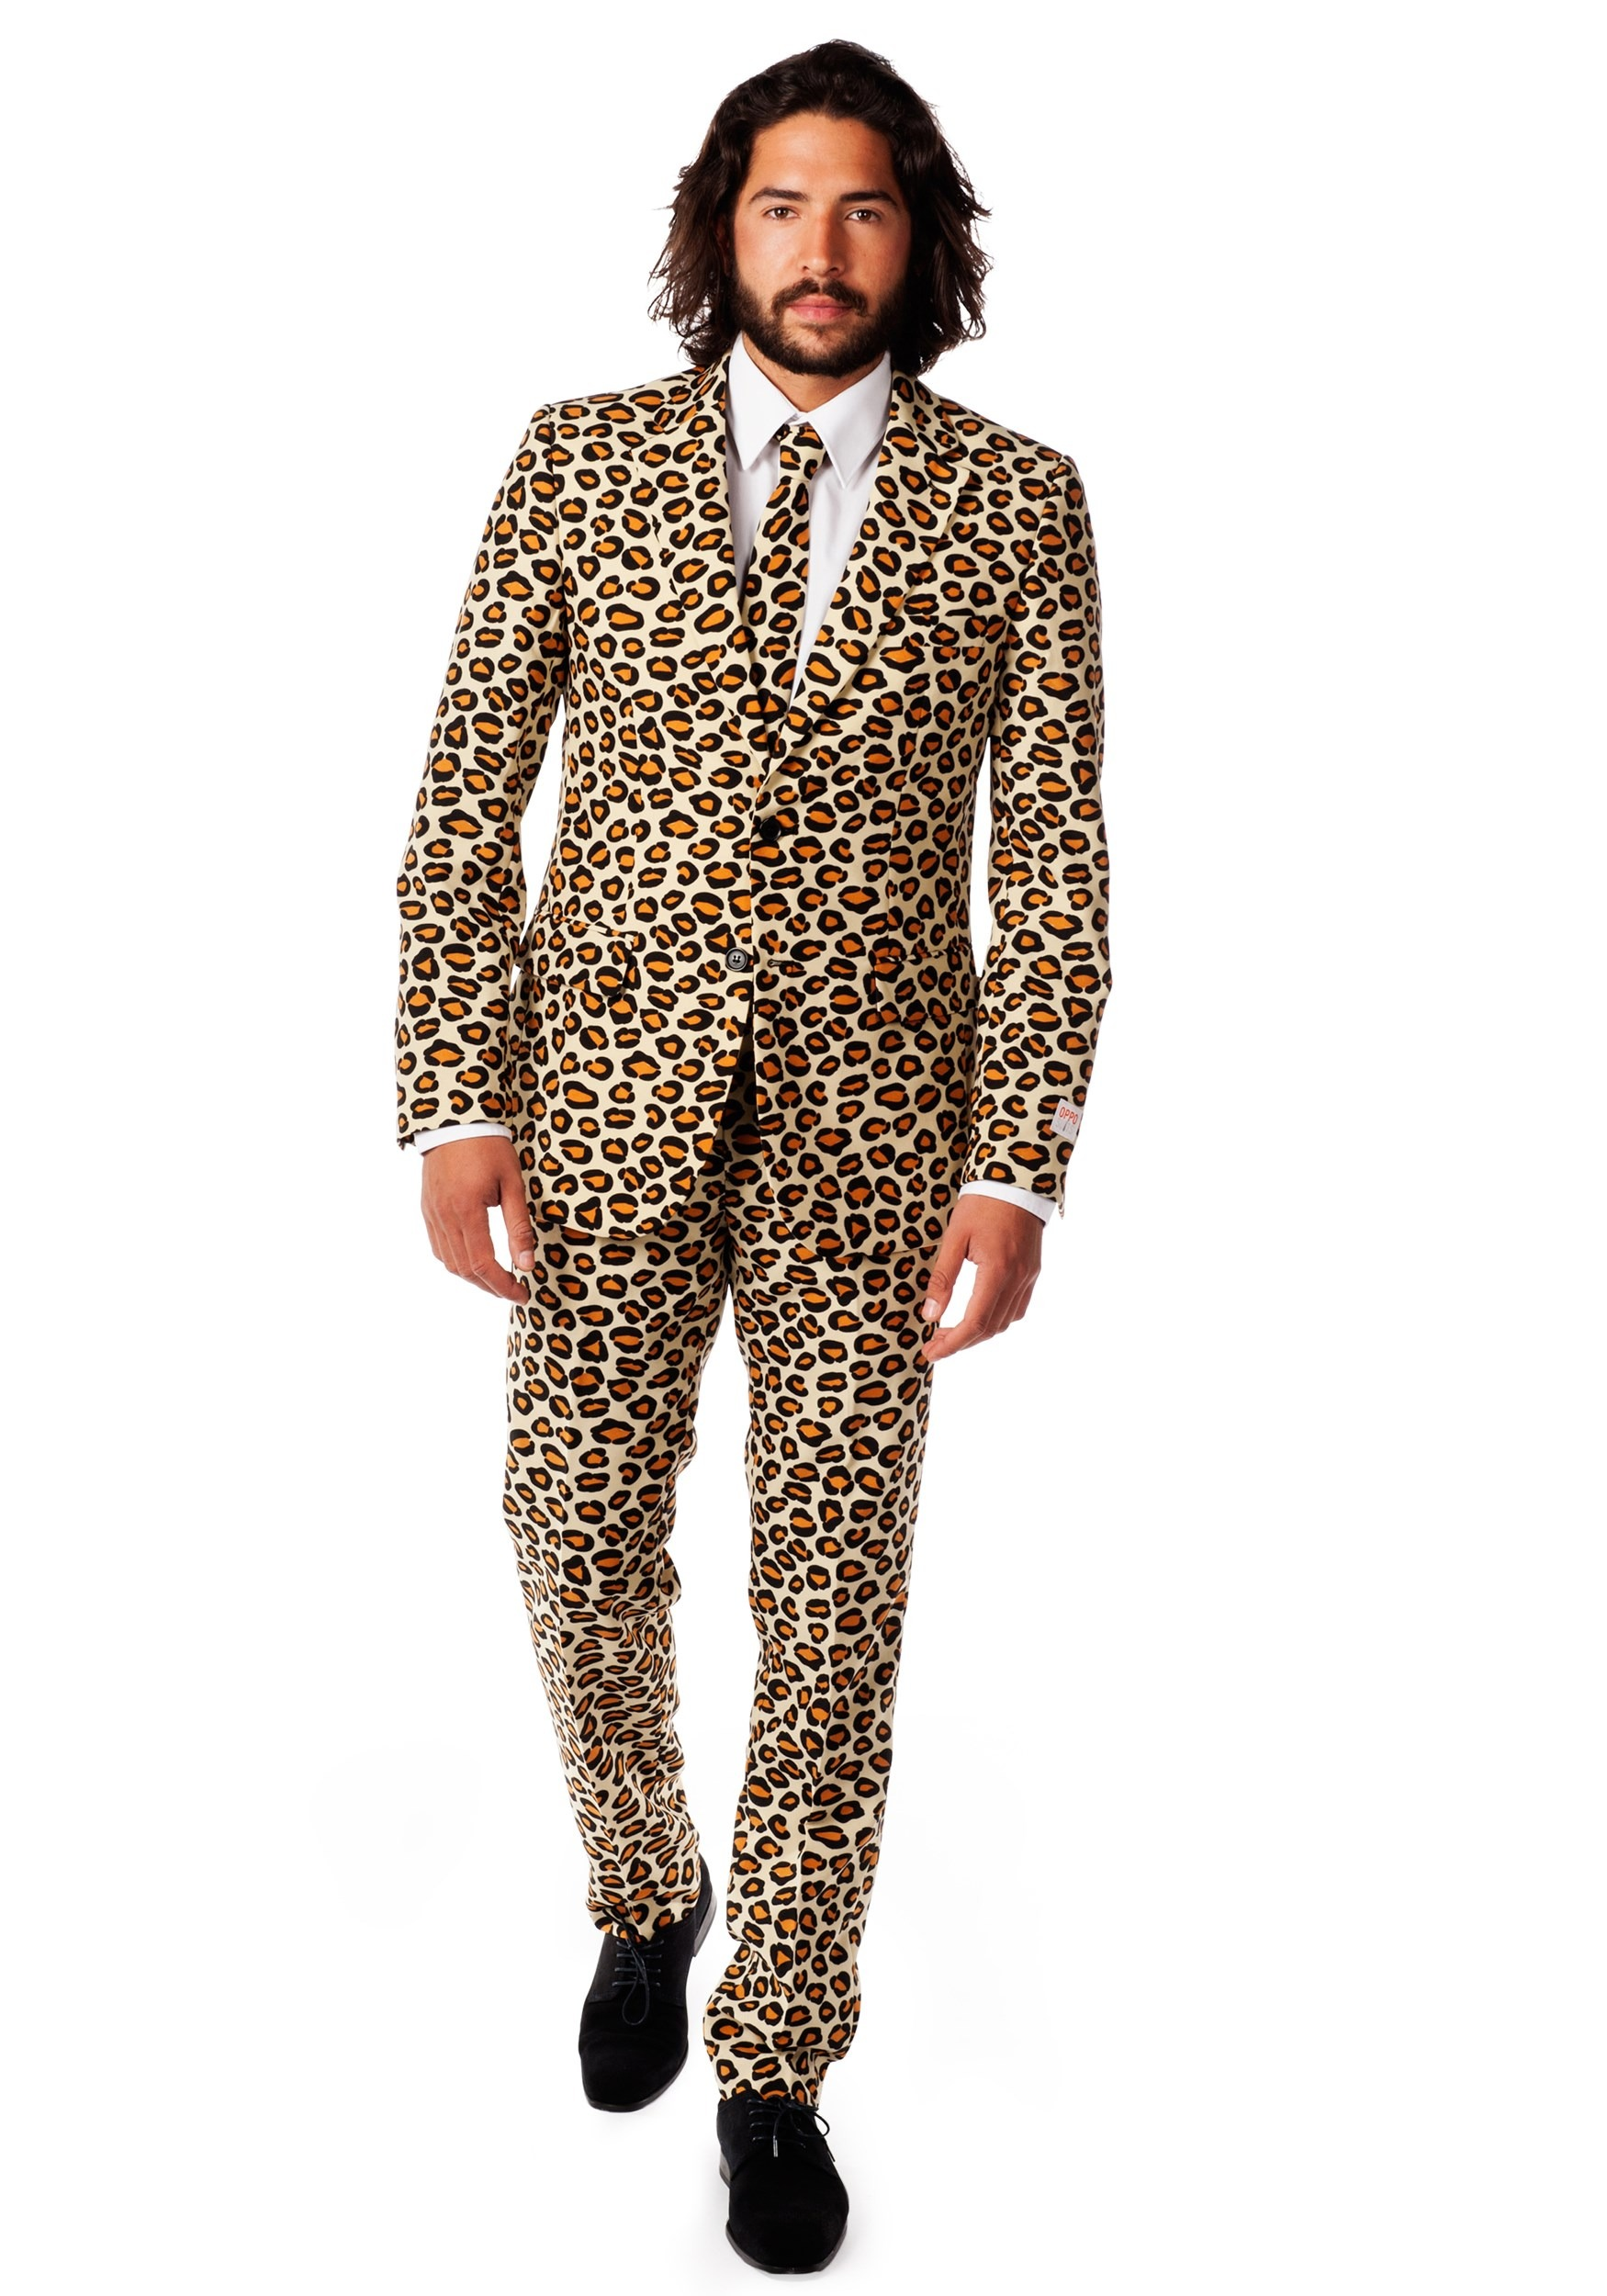 Men's Jaguar Print Suit OppoSuits Costume